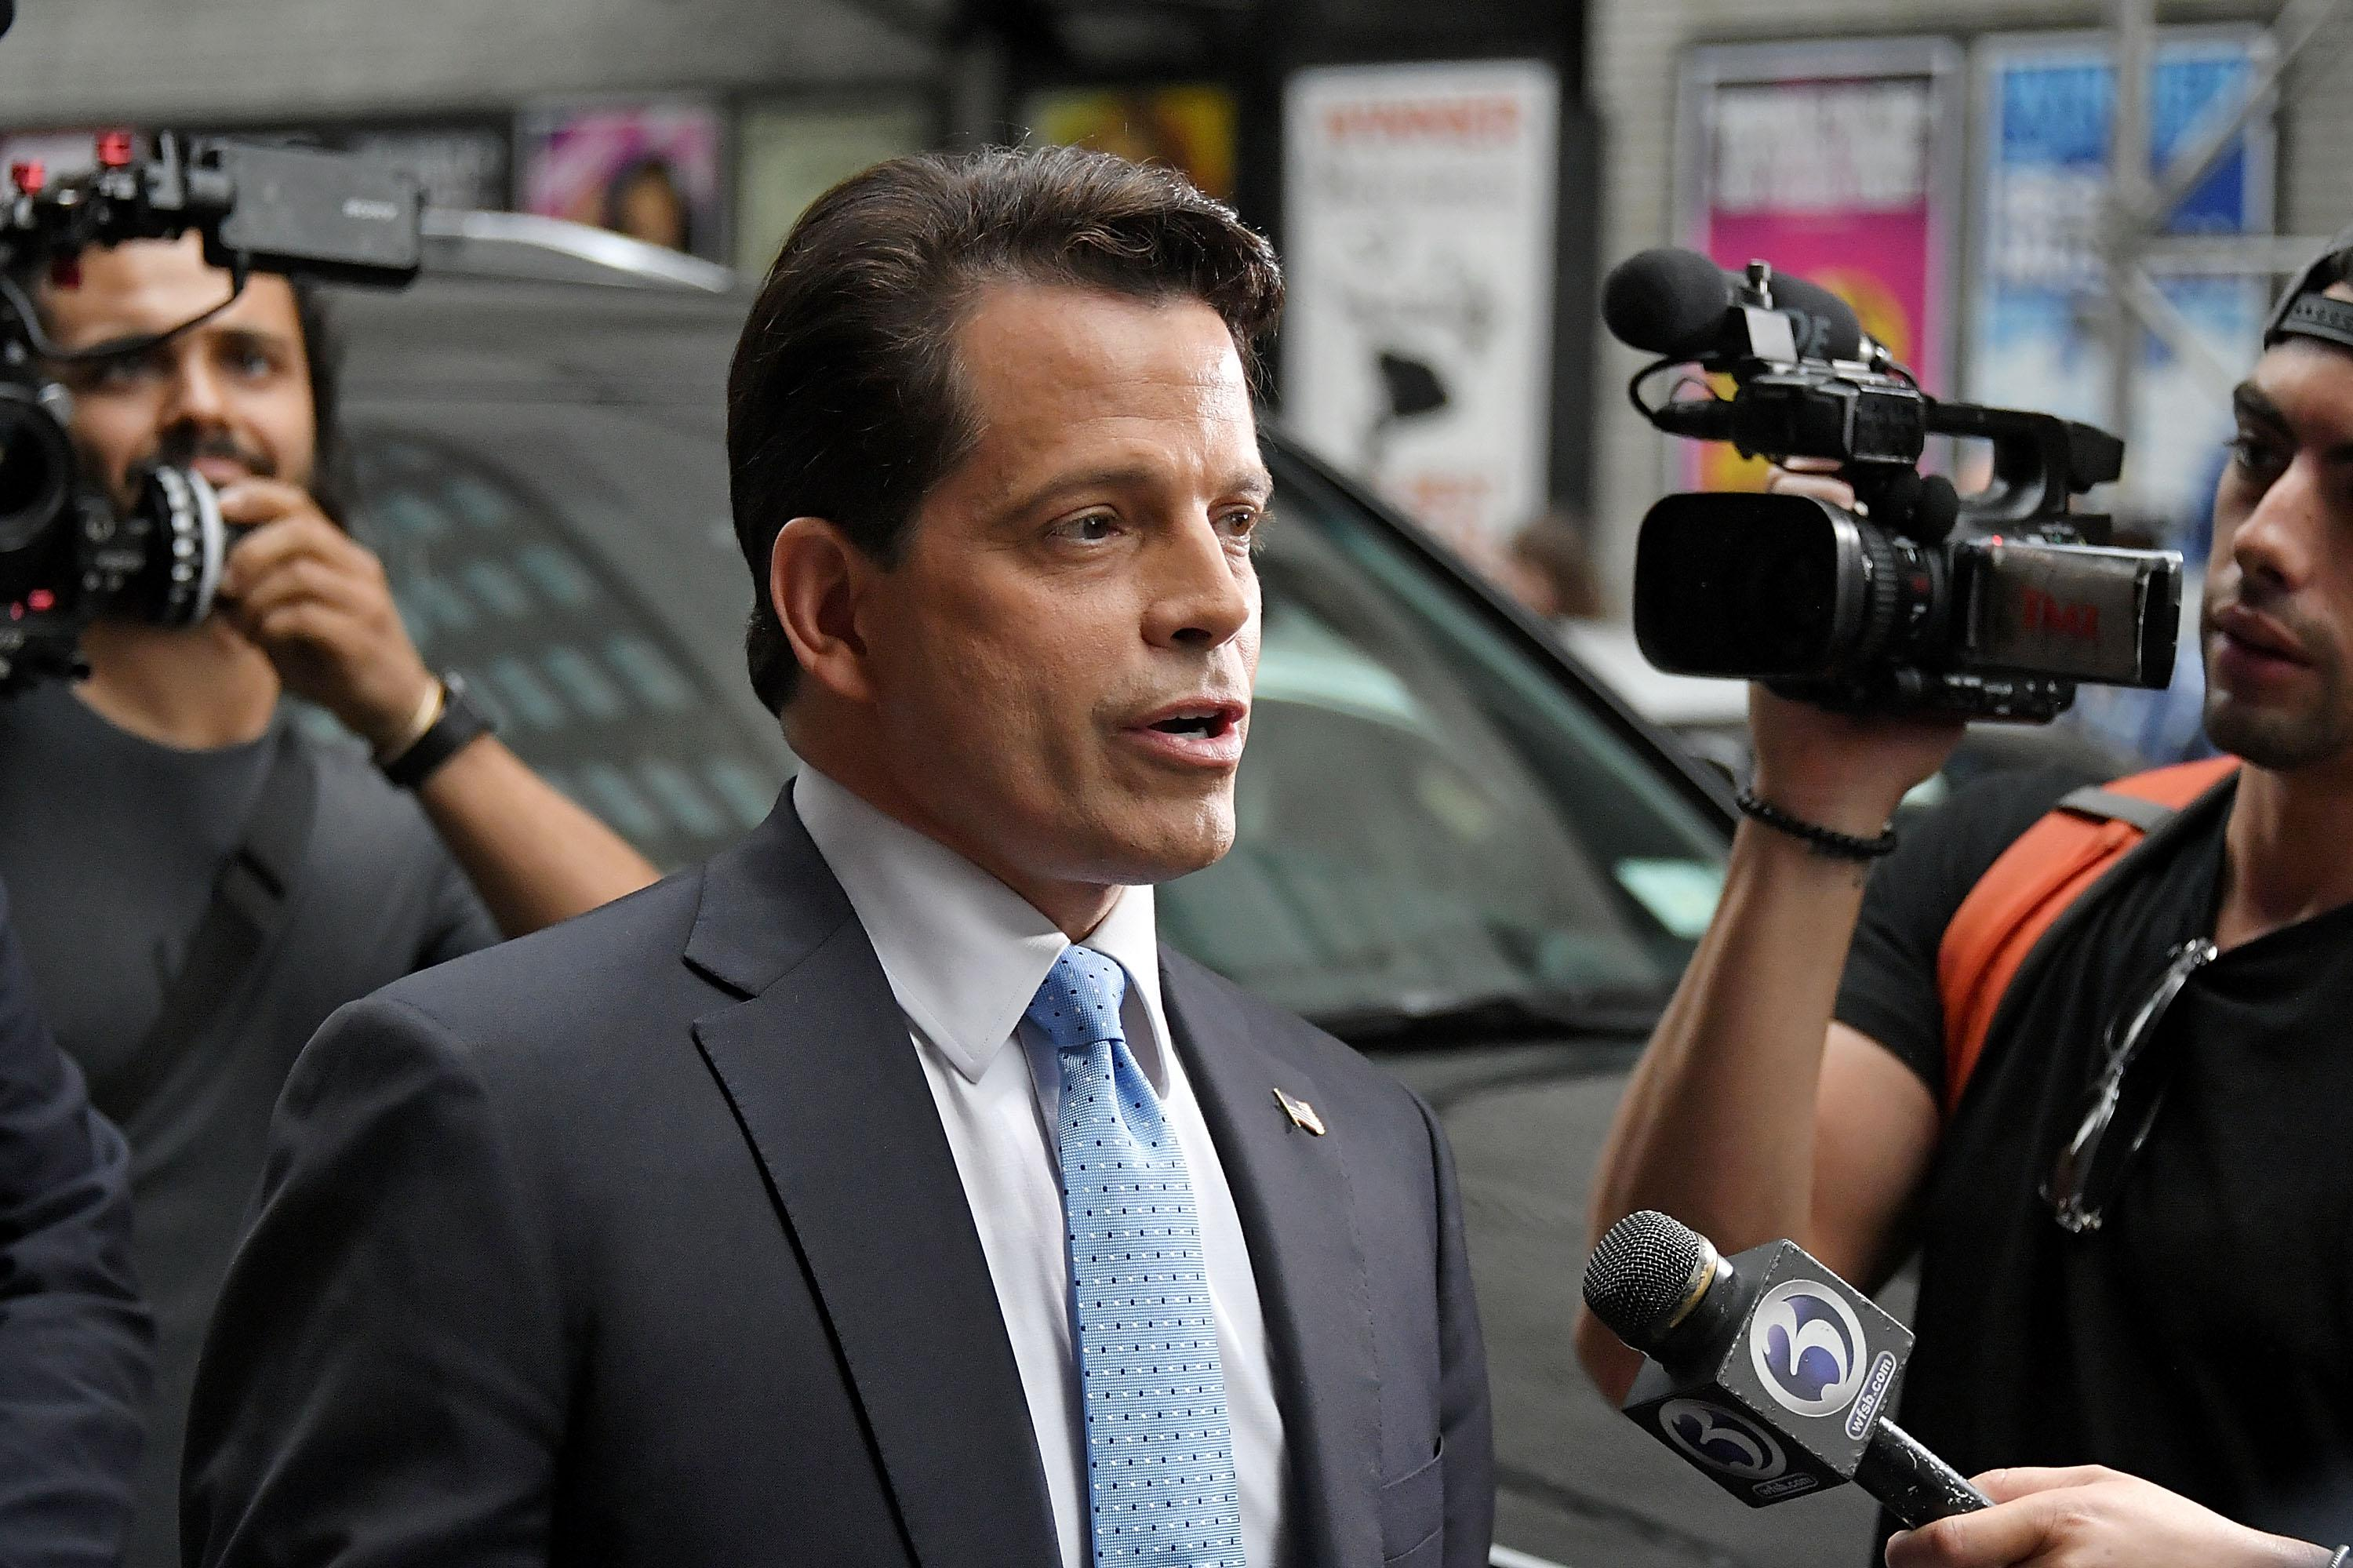 Anthony Scaramucci surrounded by cameras on a New York City street.